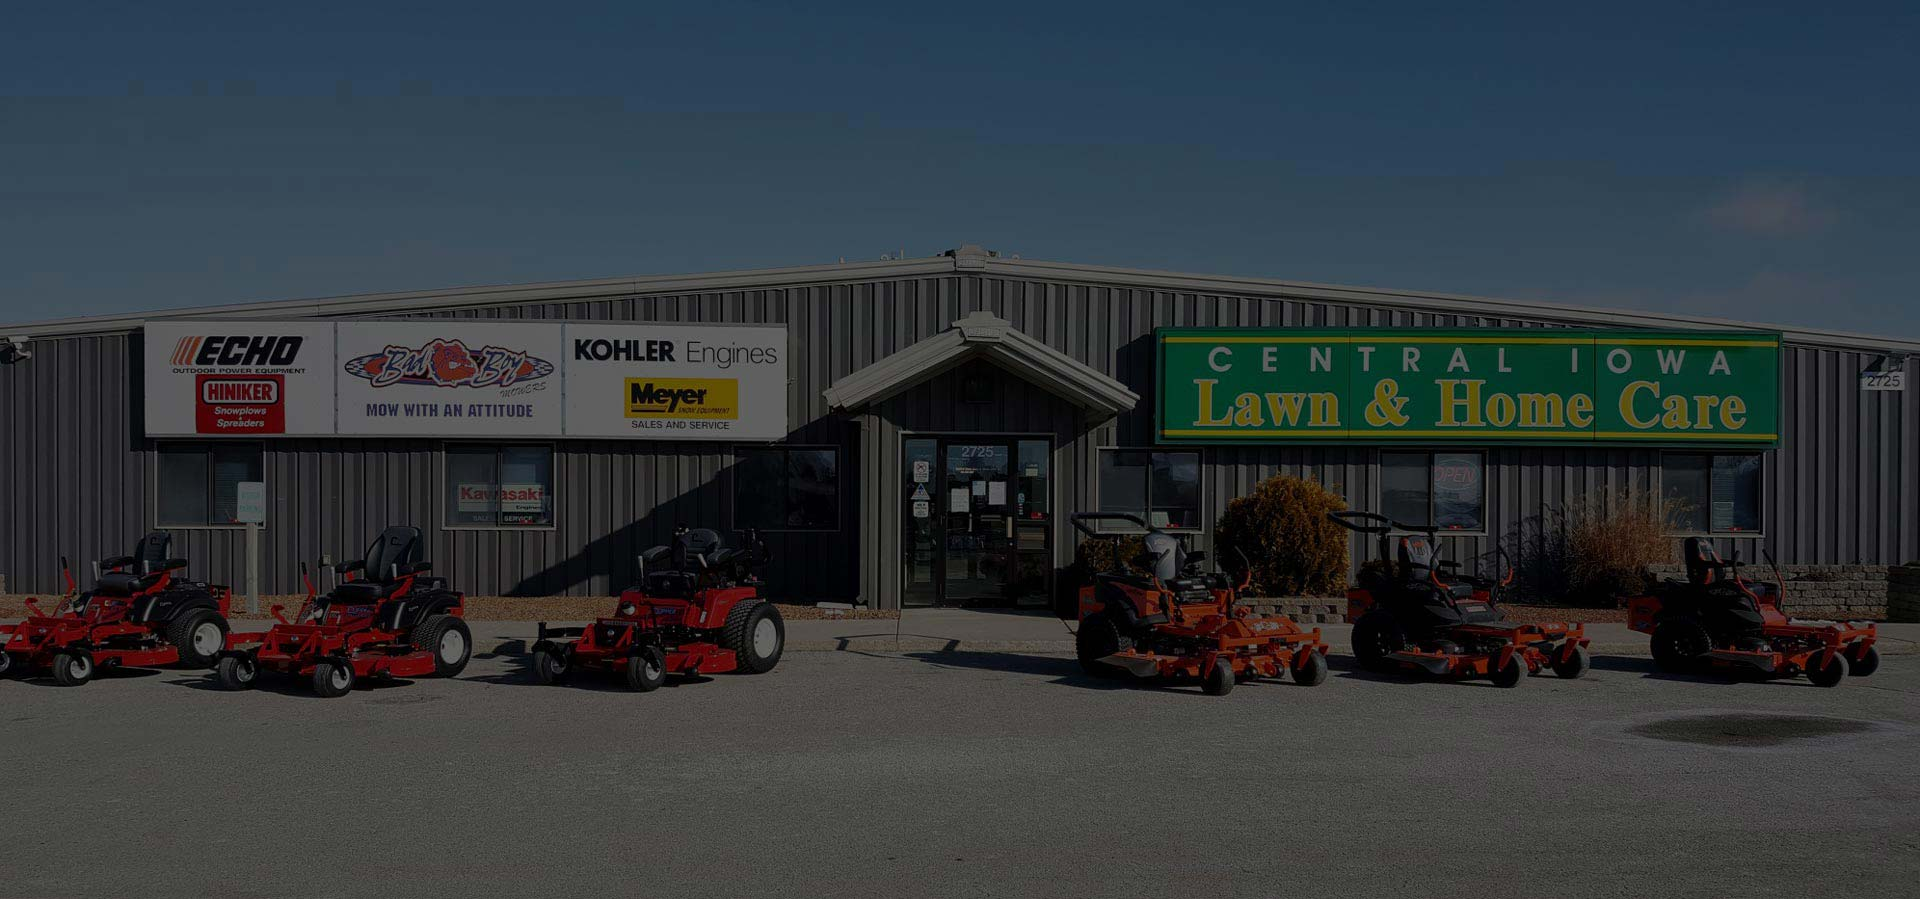 central iowa lawn and home care - building exterior